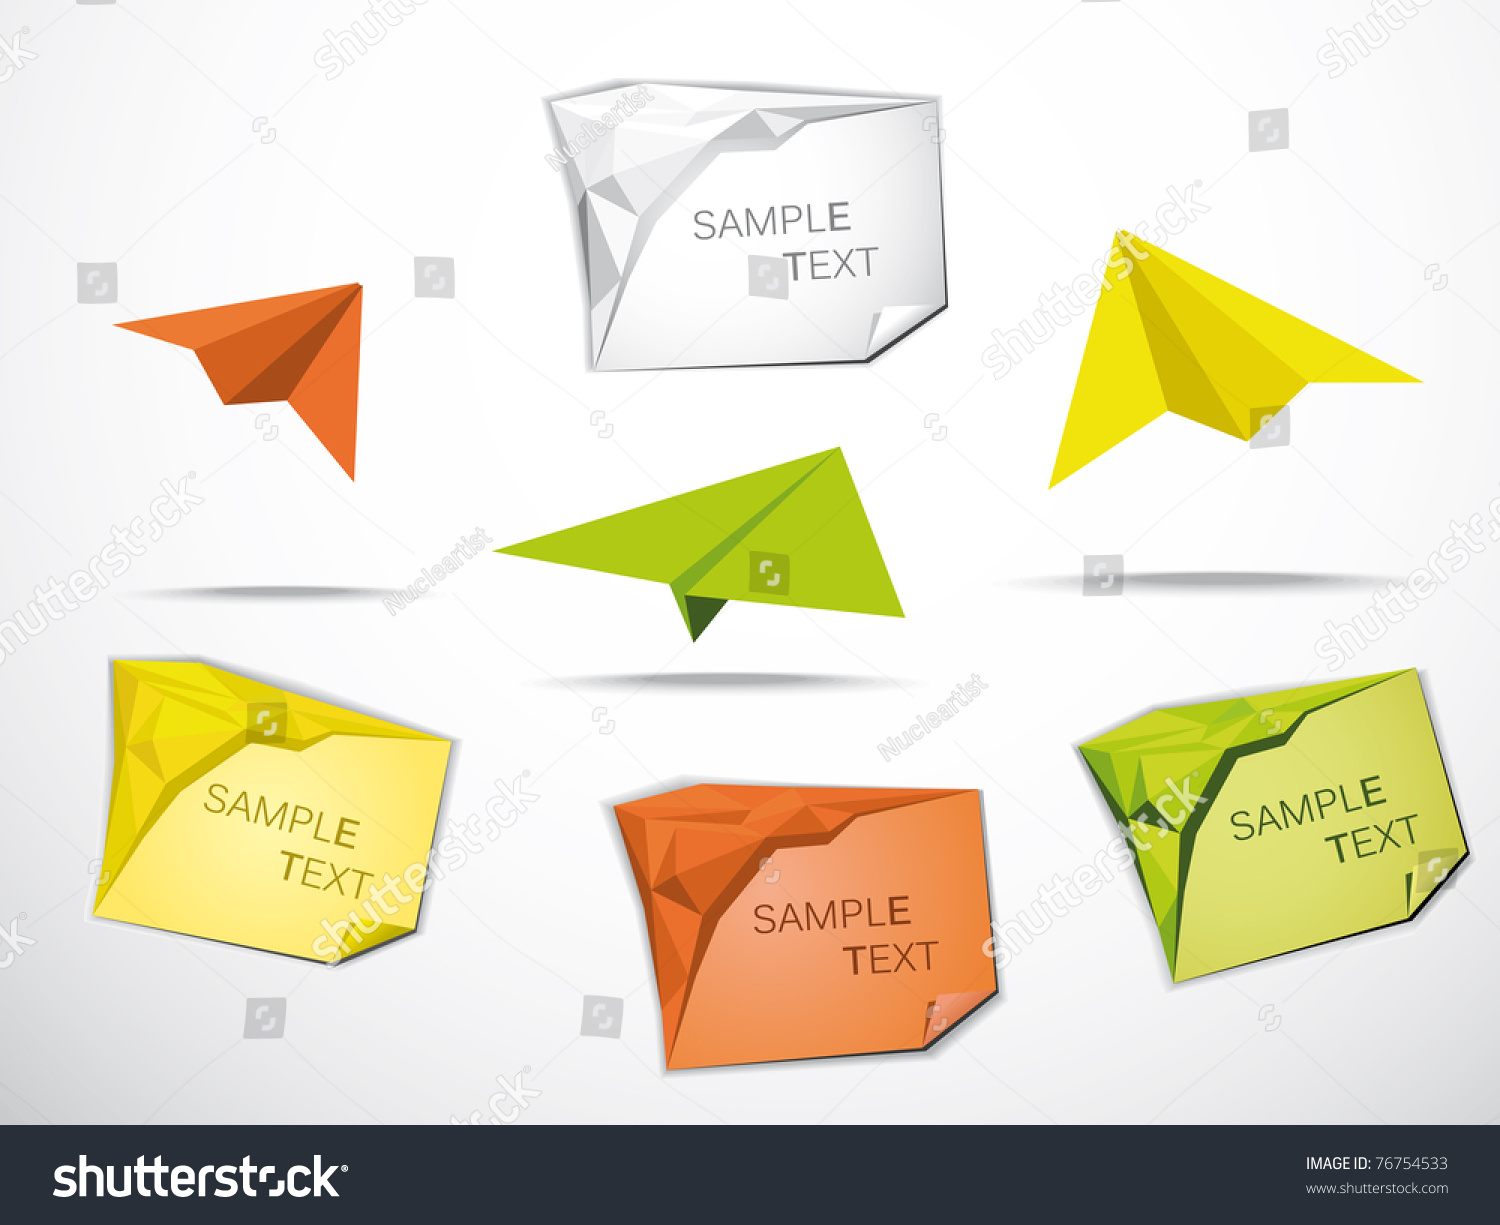 Origami business card origami planes stock vector 76754533 origami business card with origami planes jeuxipadfo Gallery